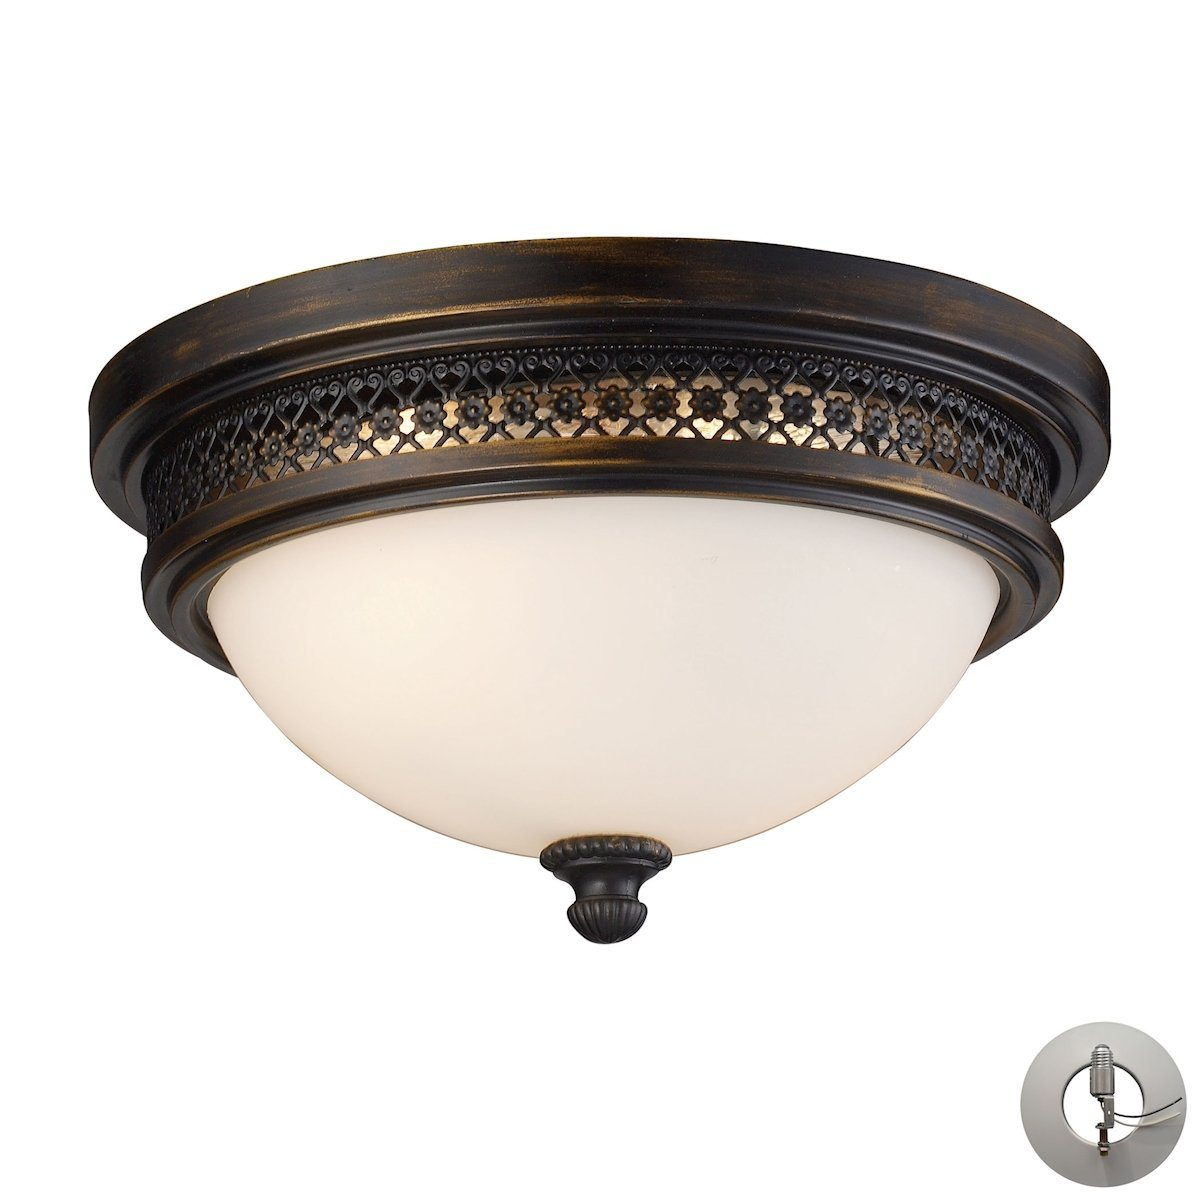 Flushmounts 2 Light Flushmount In Deep Rust And Opal White Glass - Includes Recessed Lighting Kit Flush Mount Elk Lighting